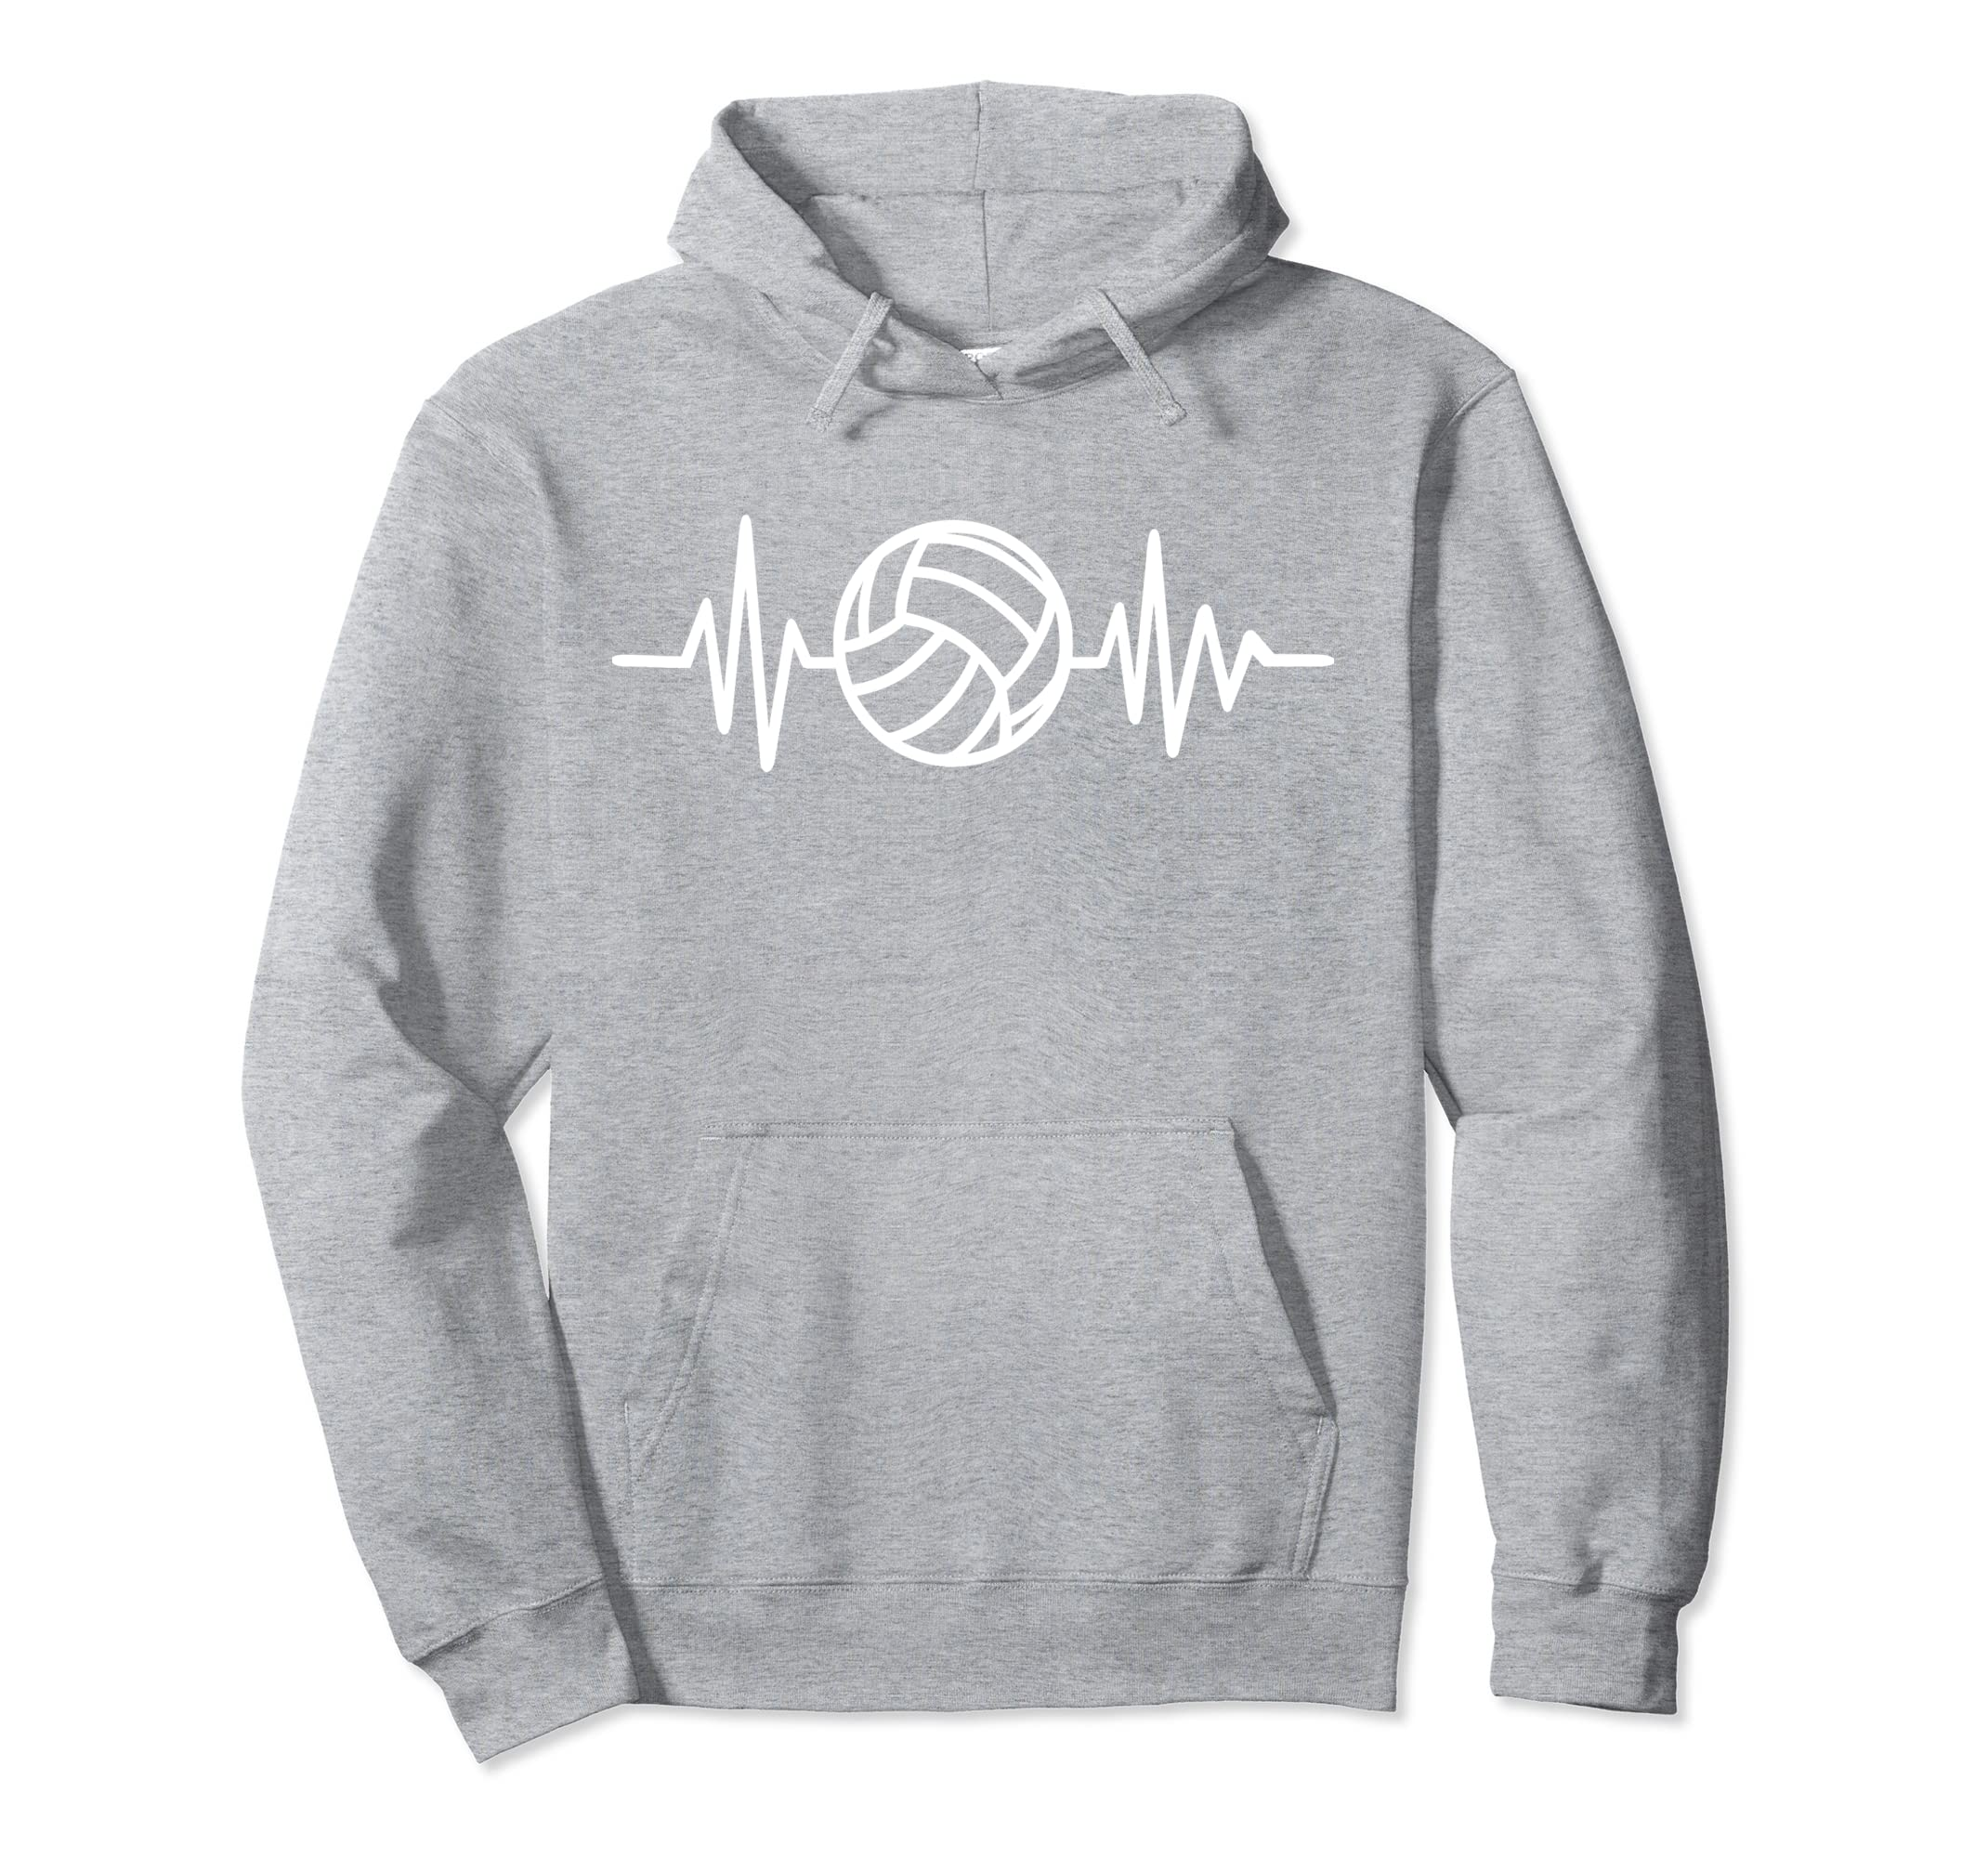 Volleyball Hoodie   Lifeline with Volleyball Heartbeat-ln